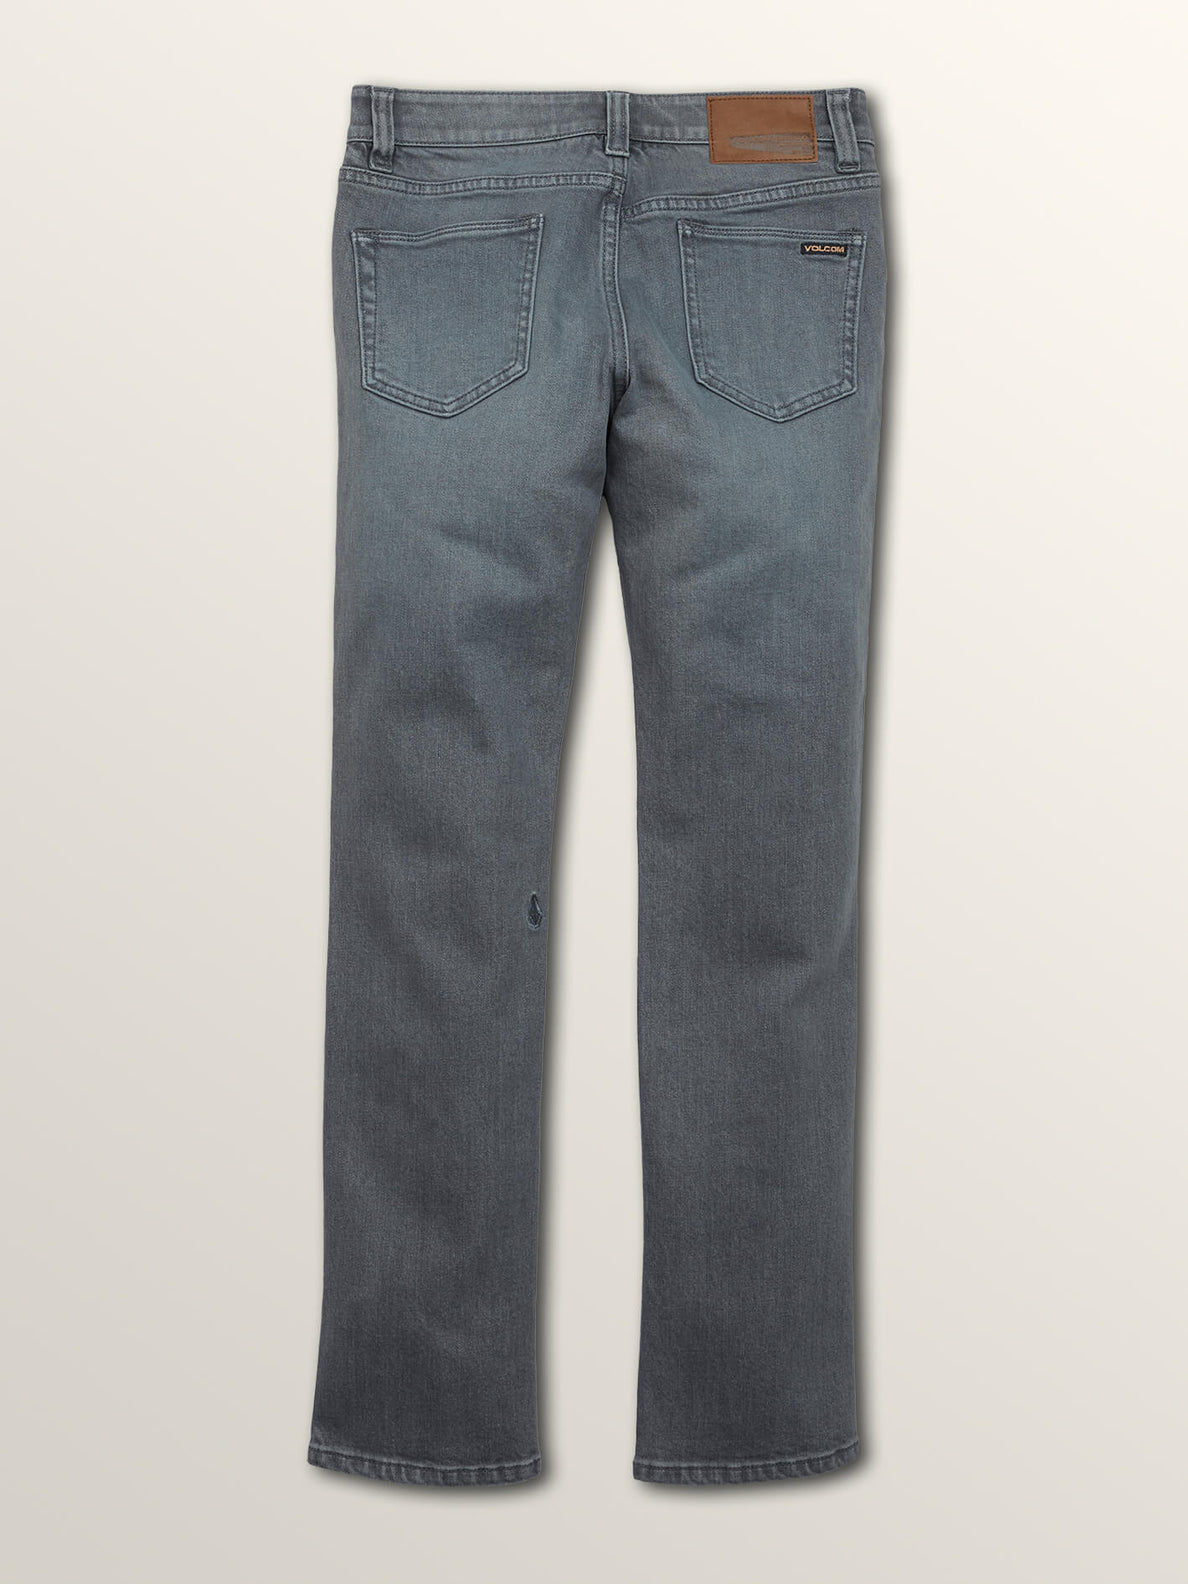 Big Boys 2X4 Skinny Fit Jeans In Grey Vintage, Back View